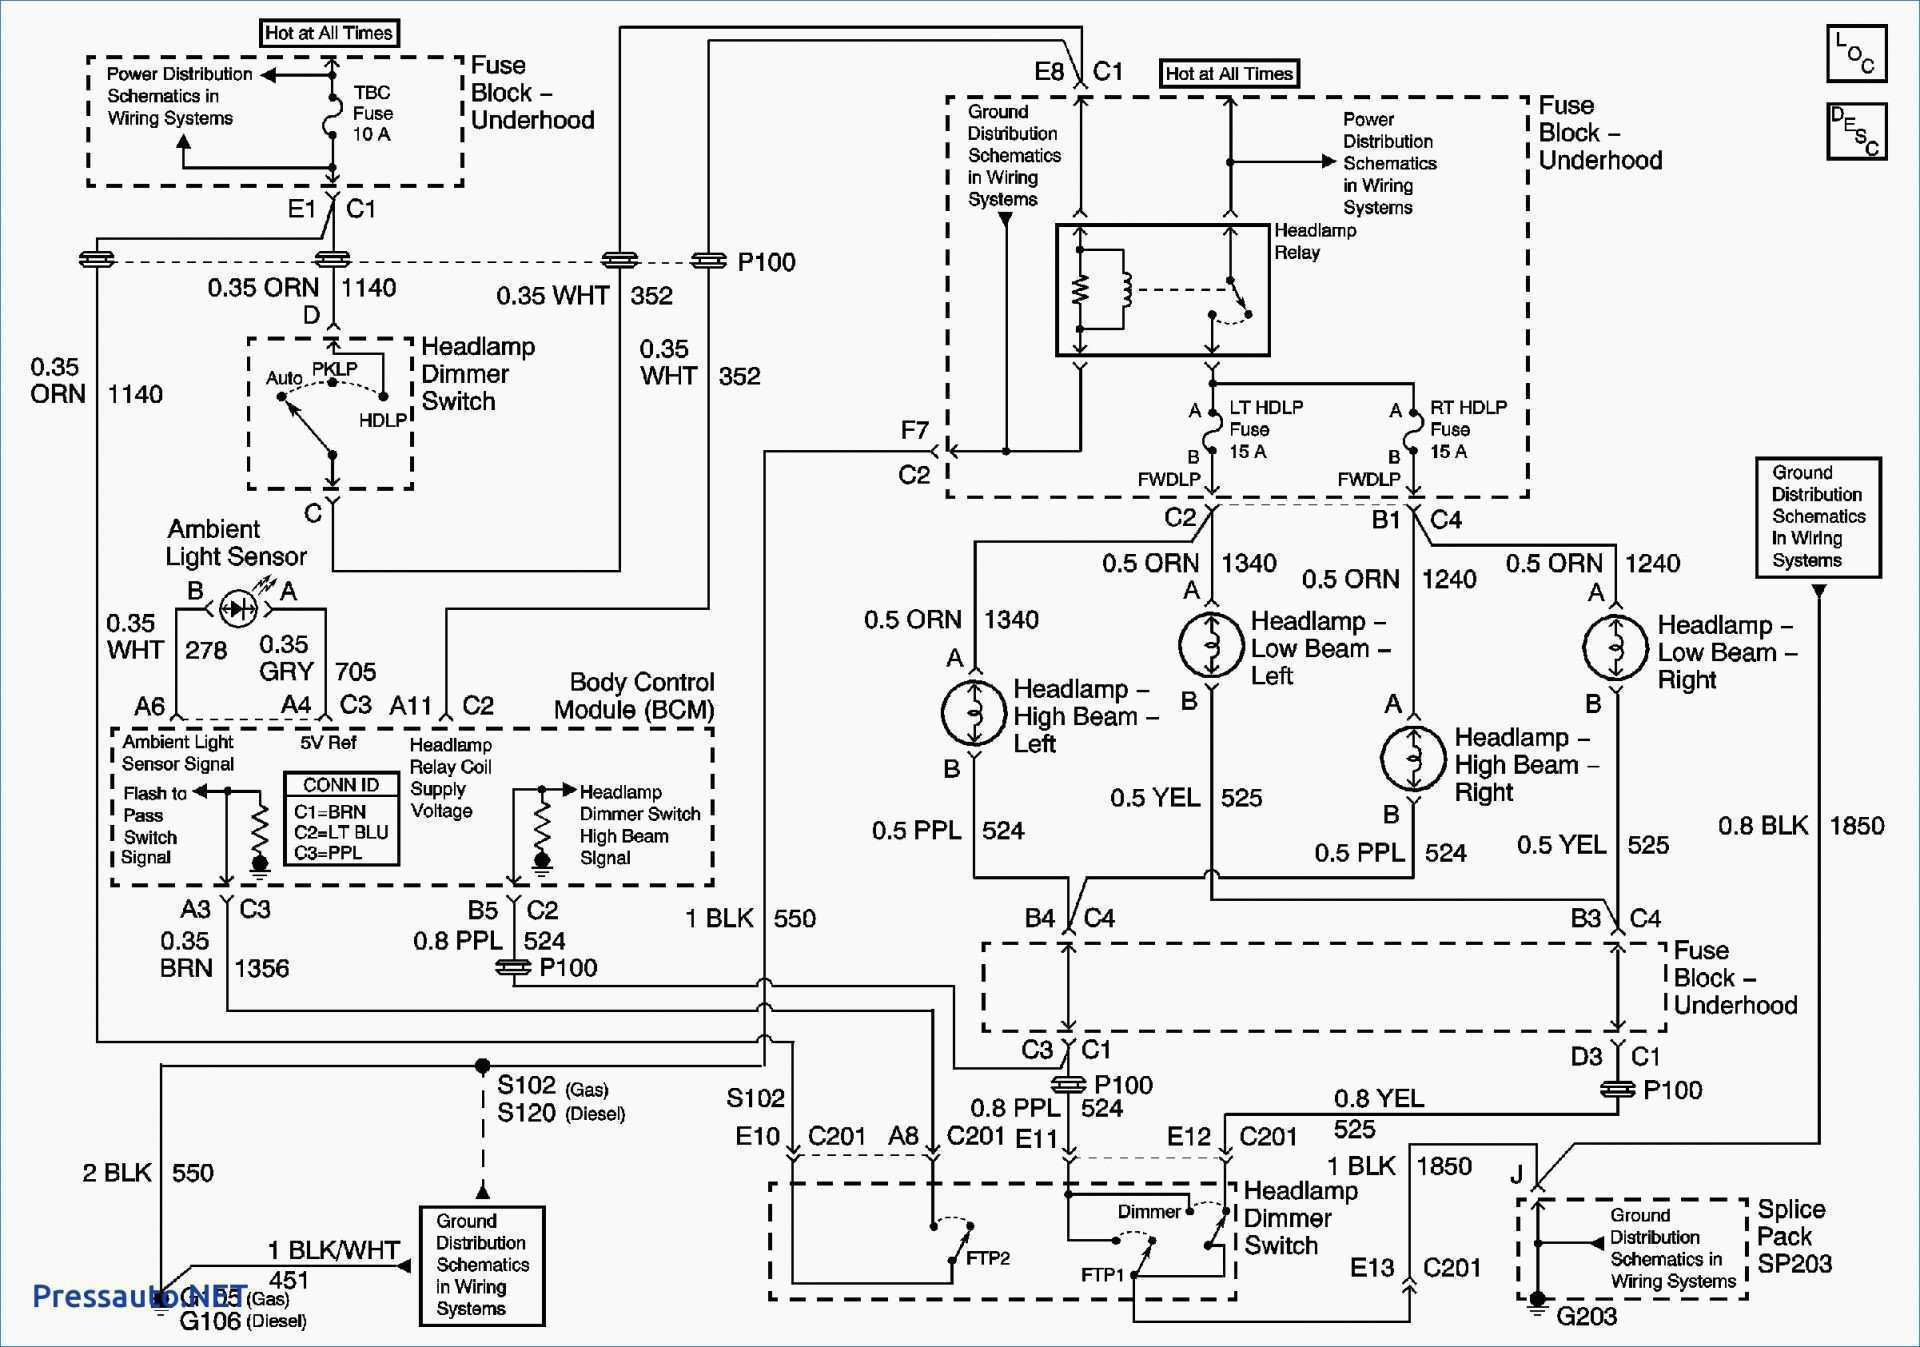 Wabco Abs Wiring Diagram 545944 | Wiring Library - Wabco Trailer Abs Wiring Diagram